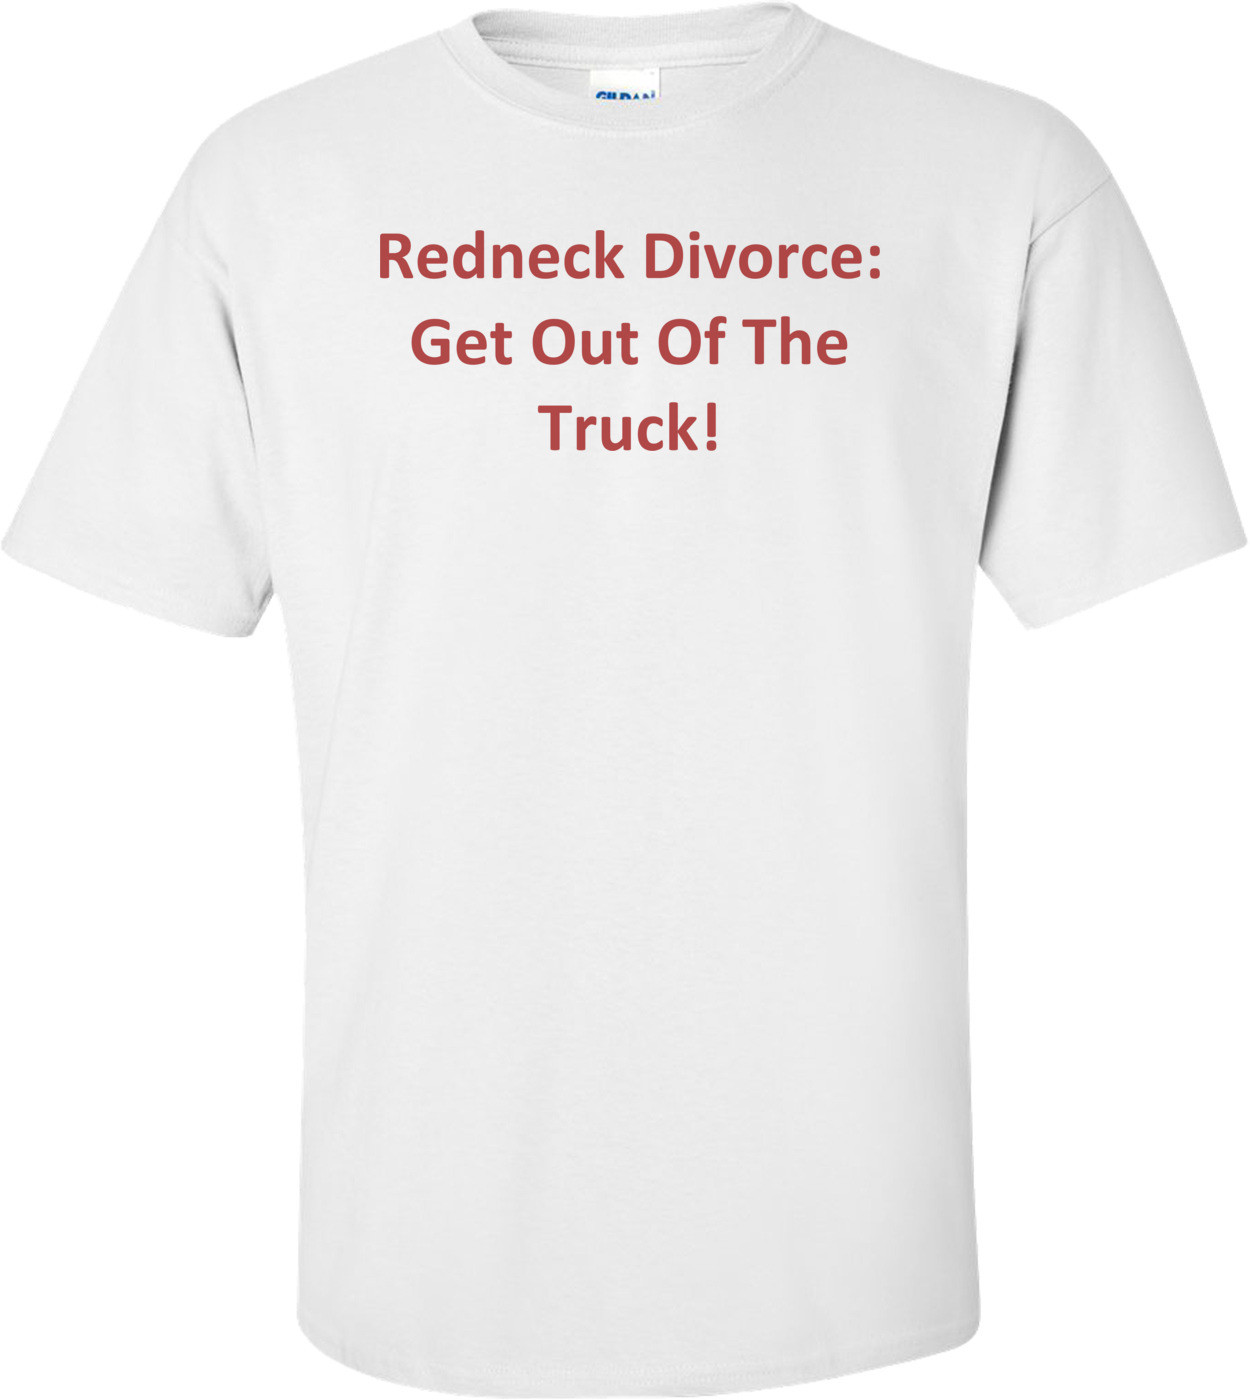 Redneck Divorce: Get Out Of The Truck! T-Shirt